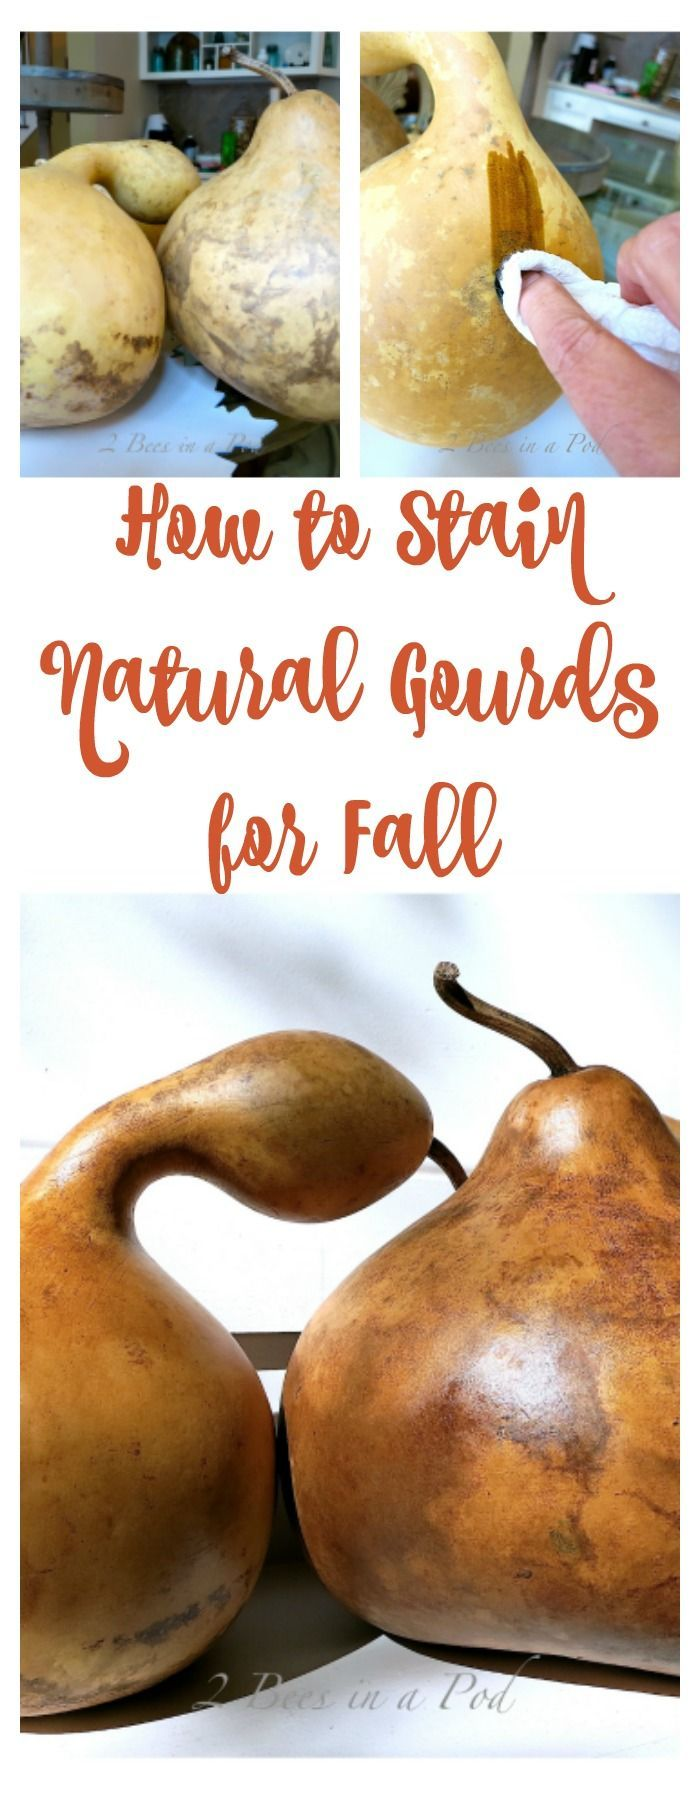 How to Stain Natural Gourds for Fall... - 2 Bees in a Pod